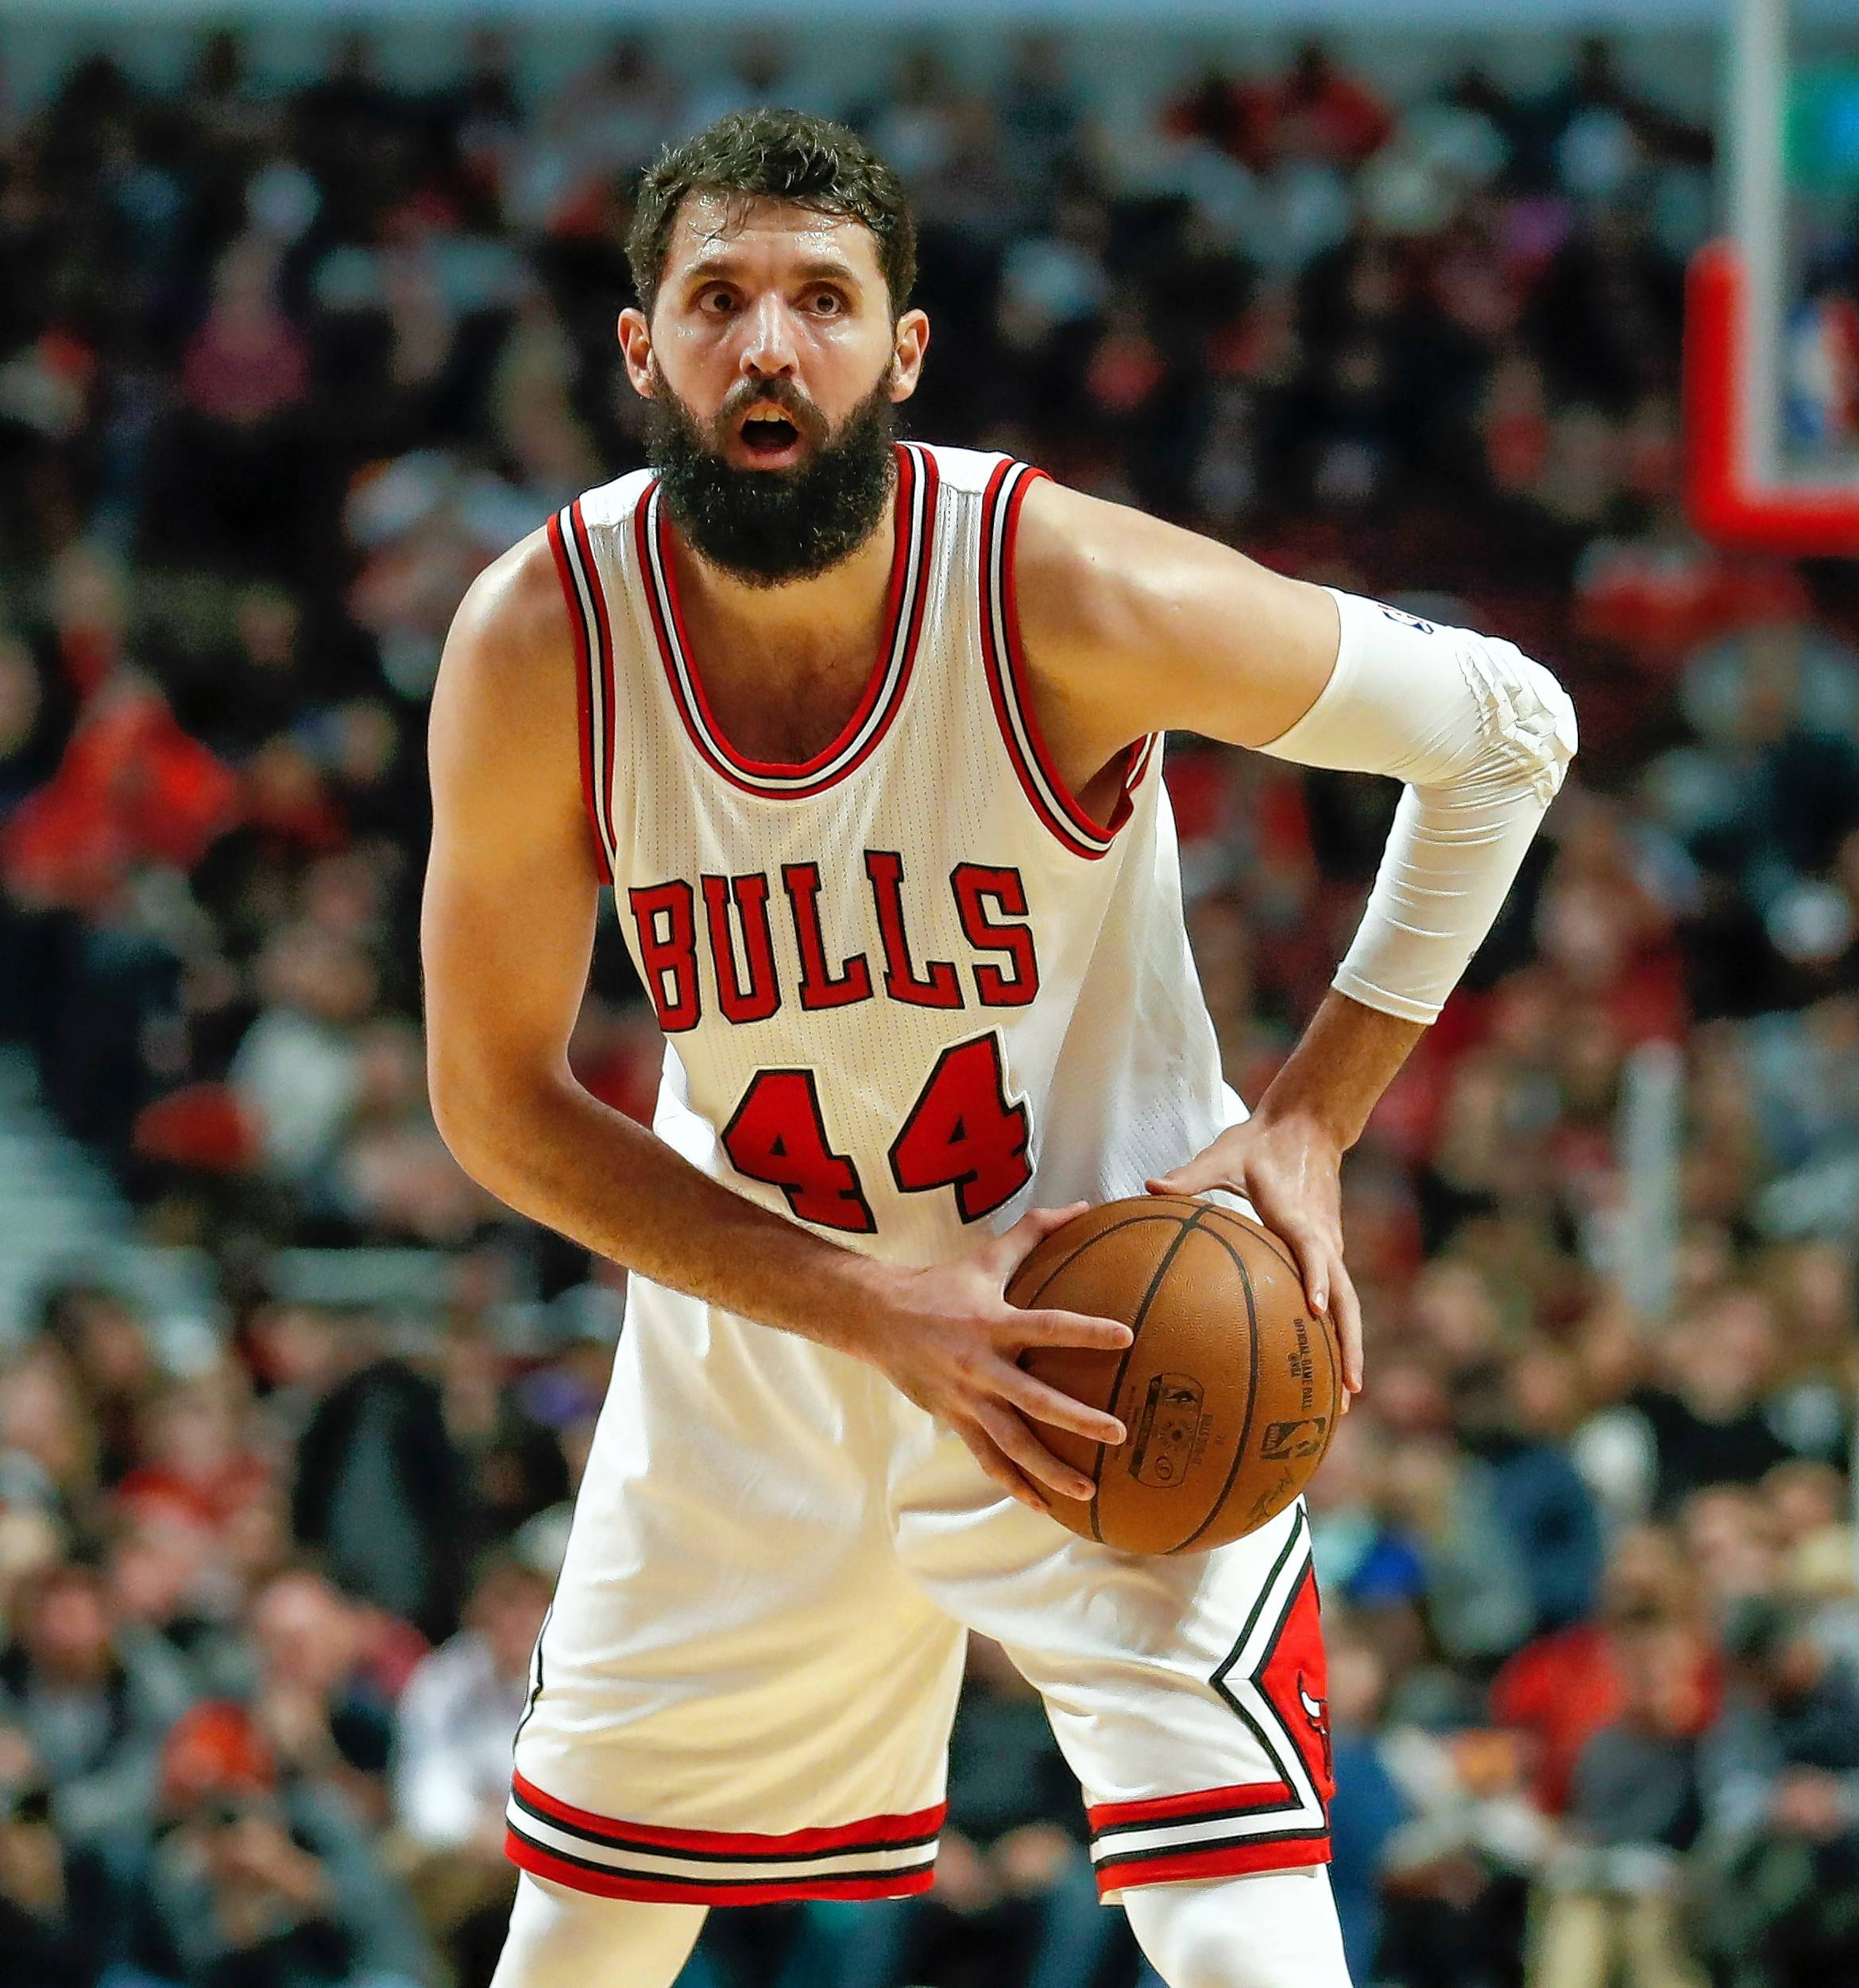 Chicago Bulls forward Nikola Mirotic worked out on his own while the team was away on the West Coast trip, but there is still no word on when — or even if — Mirotic will start practicing with the team again.